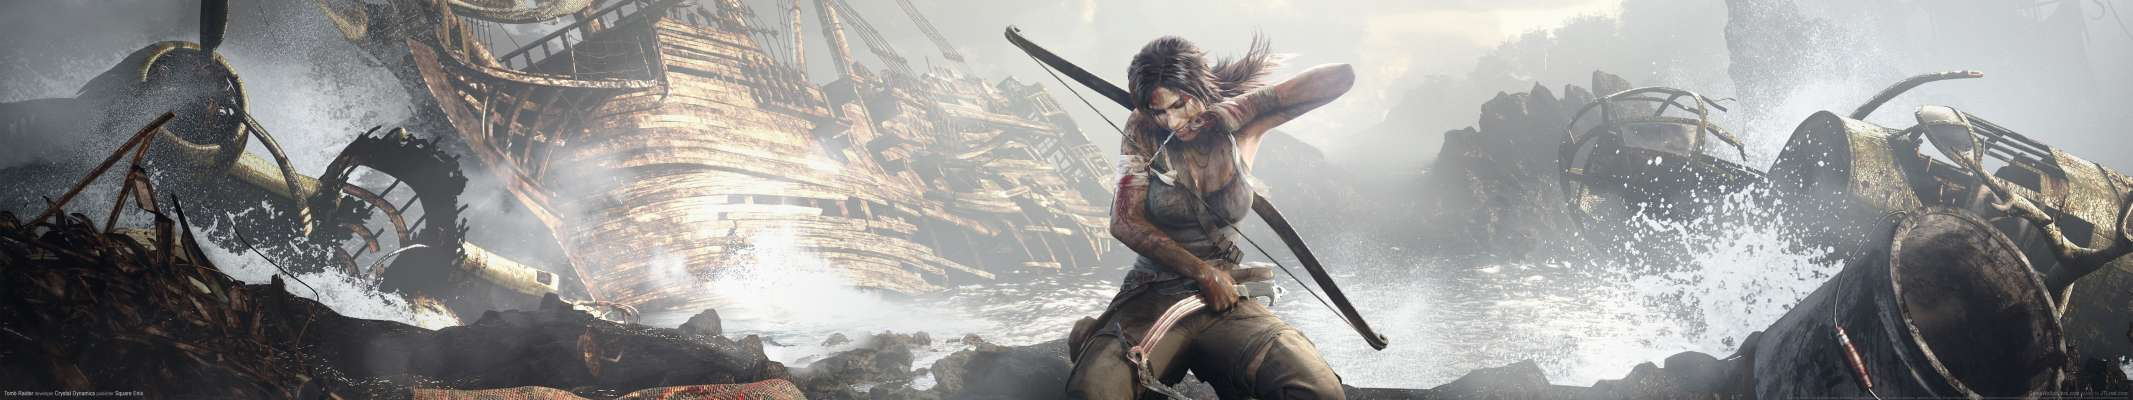 Tomb Raider triple screen achtergrond